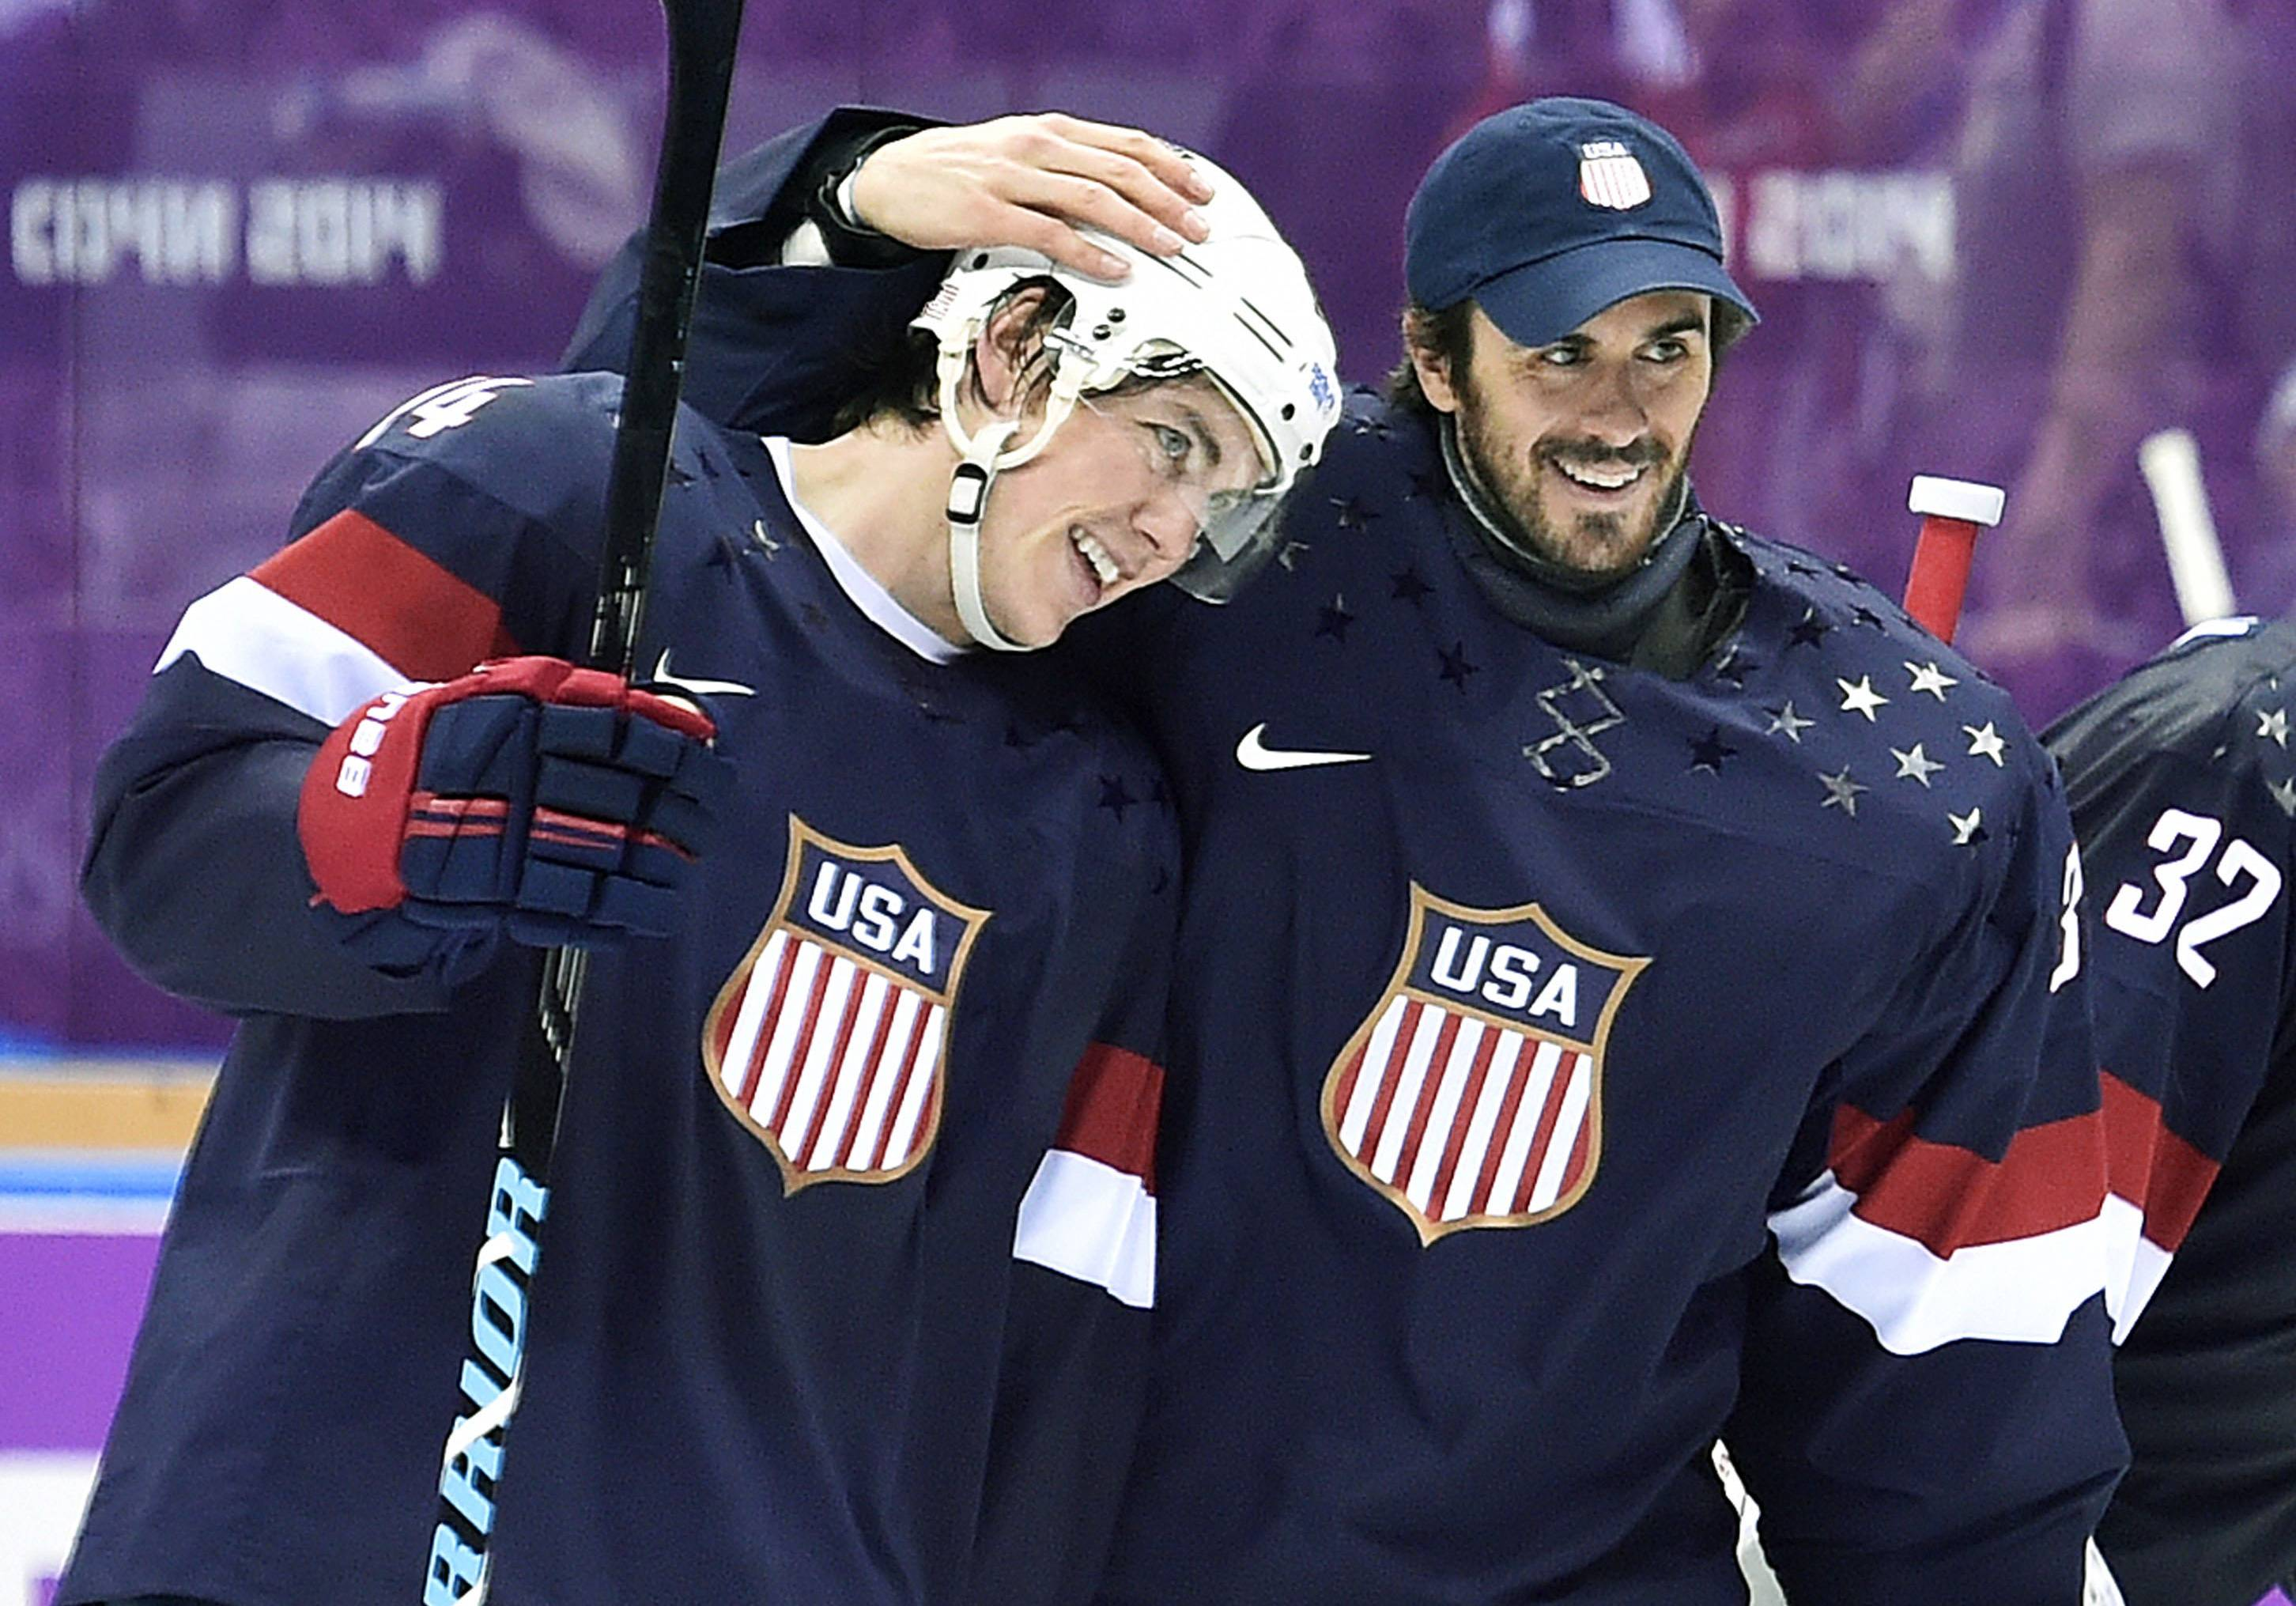 United States forward T.J. Oshie, left, is congratulated by goalie Ryan Miller, right, after Oshie scored the game-winning goal in a shootout against Russia in a men's ice hockey game at the 2014 Winter Olympics, Saturday, Feb. 15, in Sochi, Russia. The U.S. won 3-2 in a shootout.